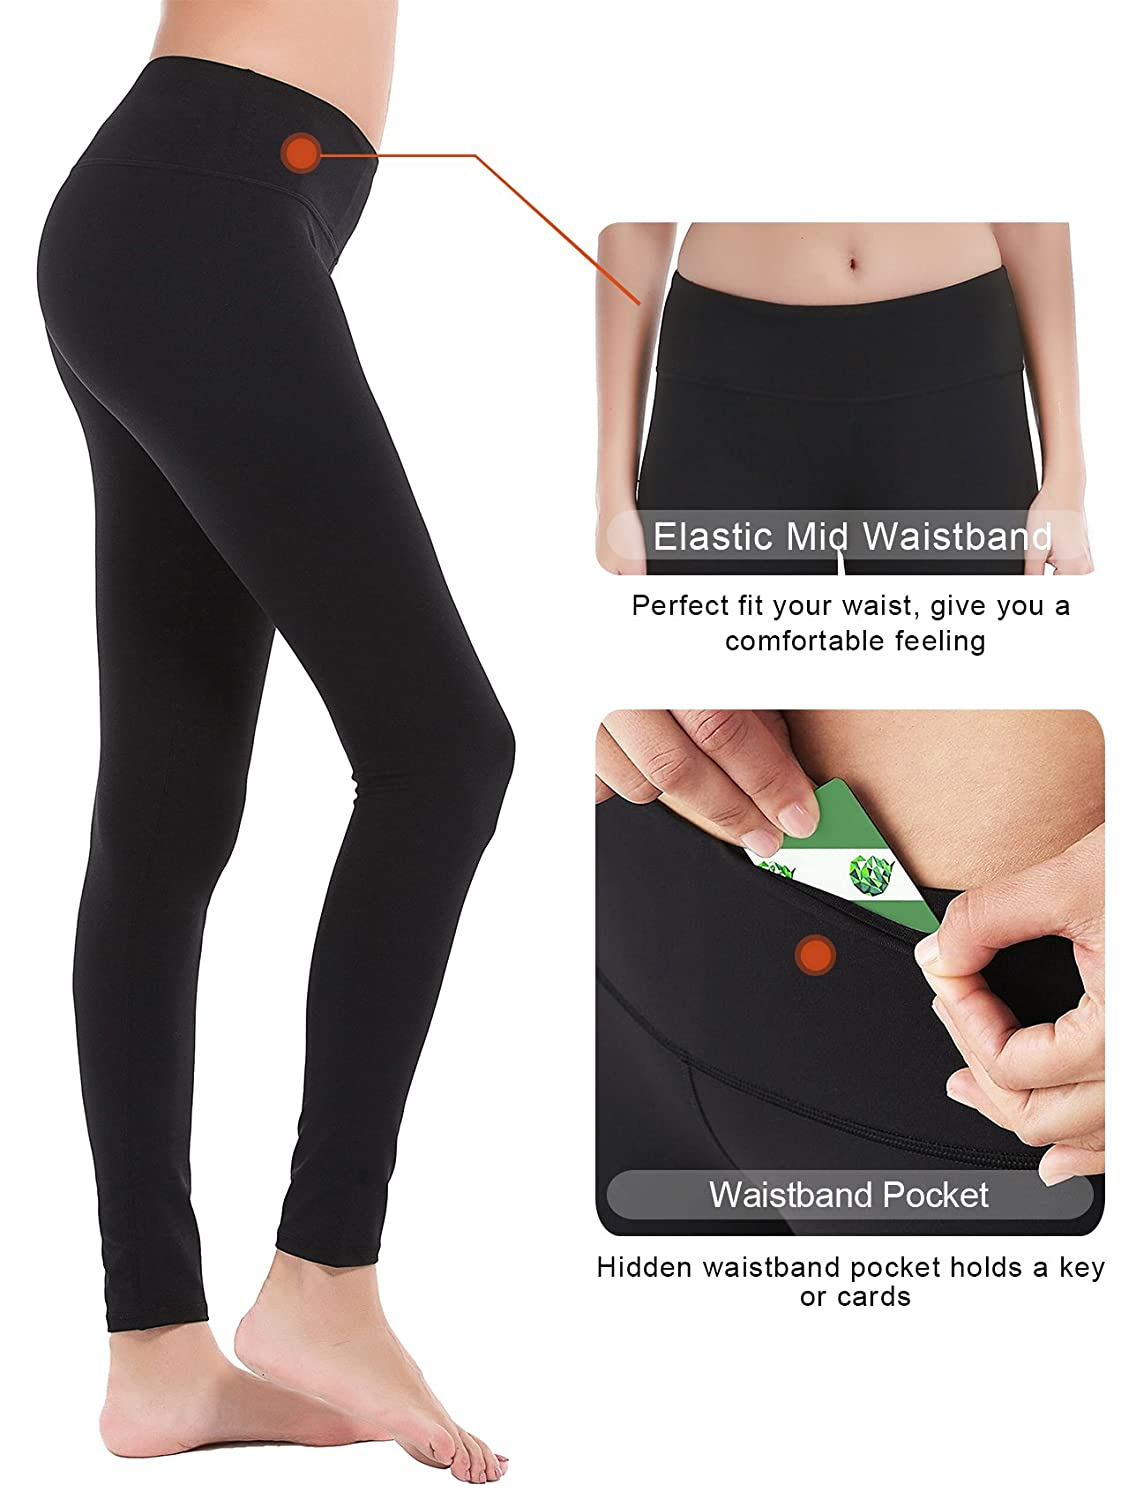 a96a17110e DeepTwist Womens Yoga Pants Active Ankle Workout Leggings Stretch Running  Tights with Hidden Pocket, SZ4002-Black-6 at Amazon Women's Clothing store: